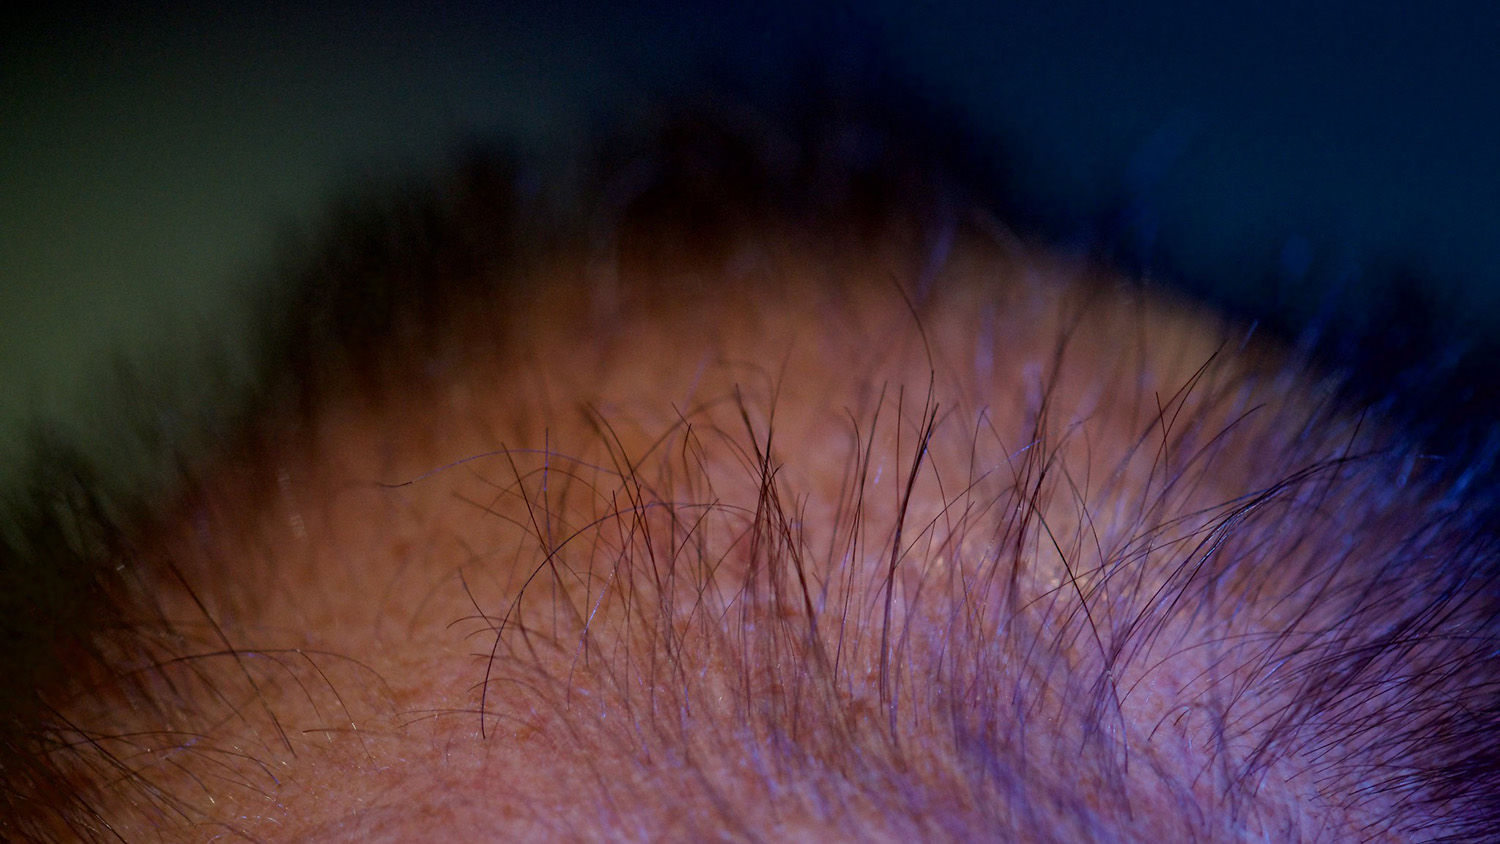 the top of a man's head that is losing its hair